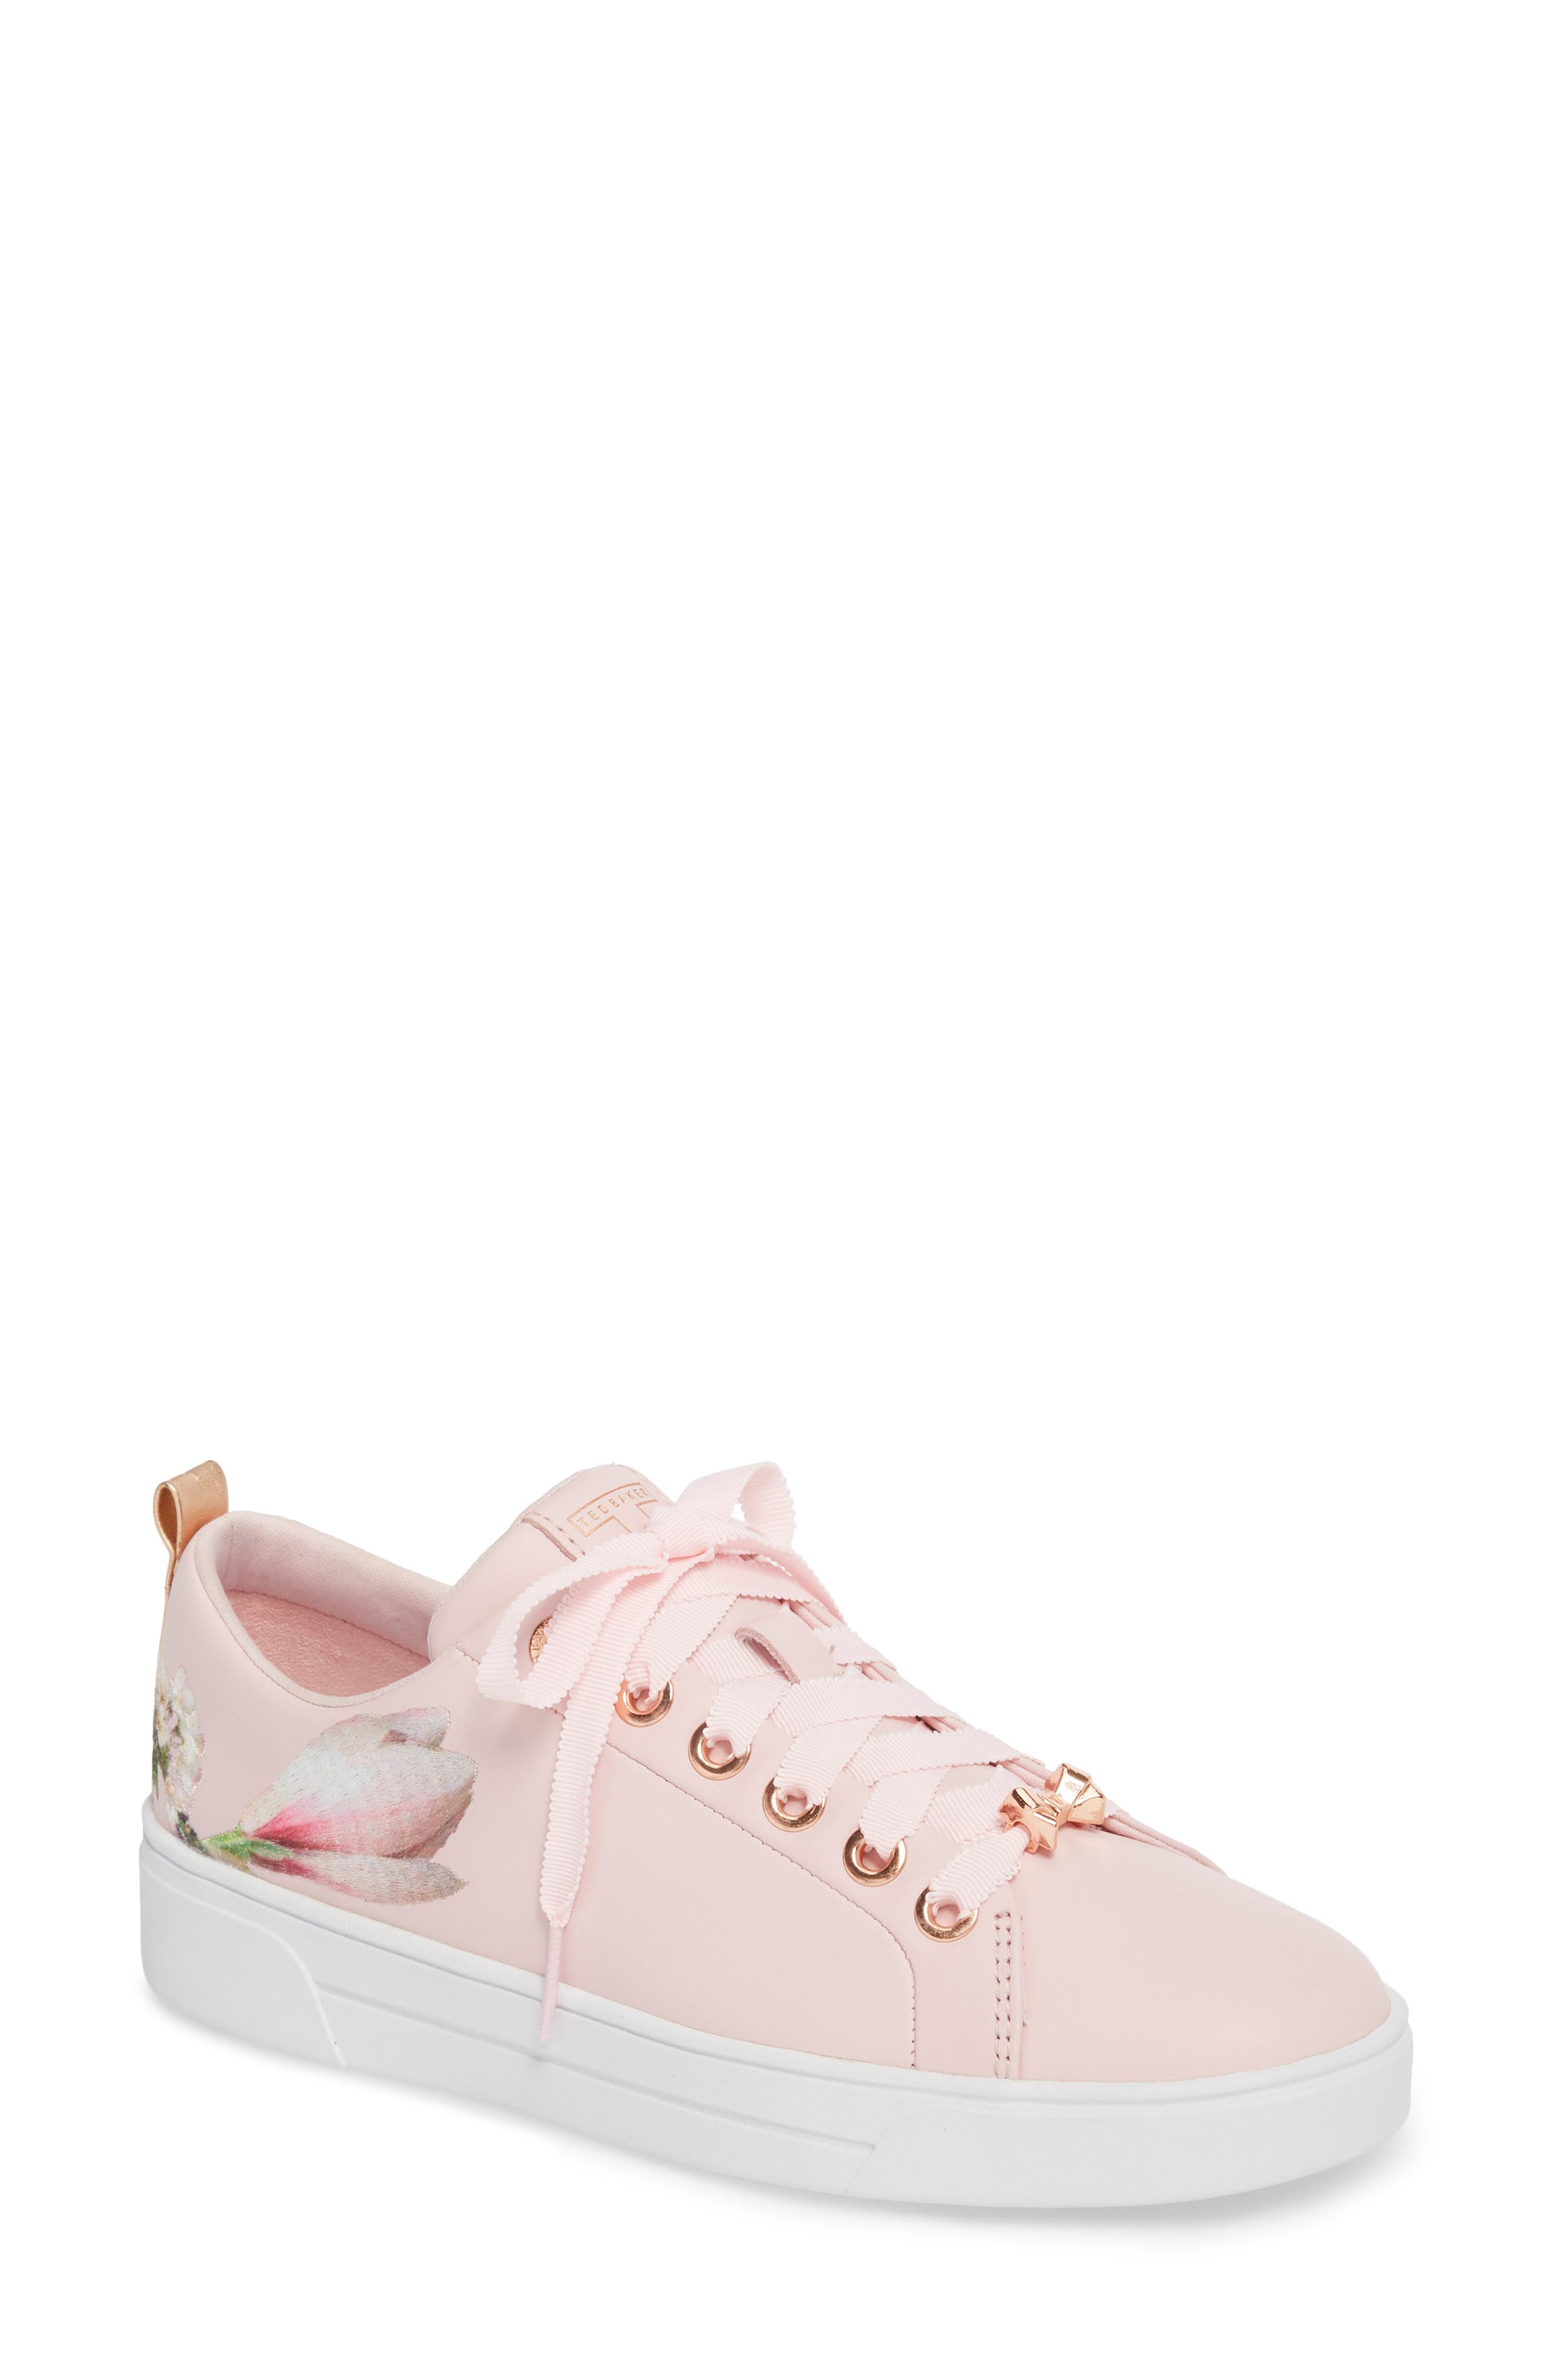 Kelleie Embroidered Sneaker,                             Main thumbnail 1, color,                             Mink Pink Leather